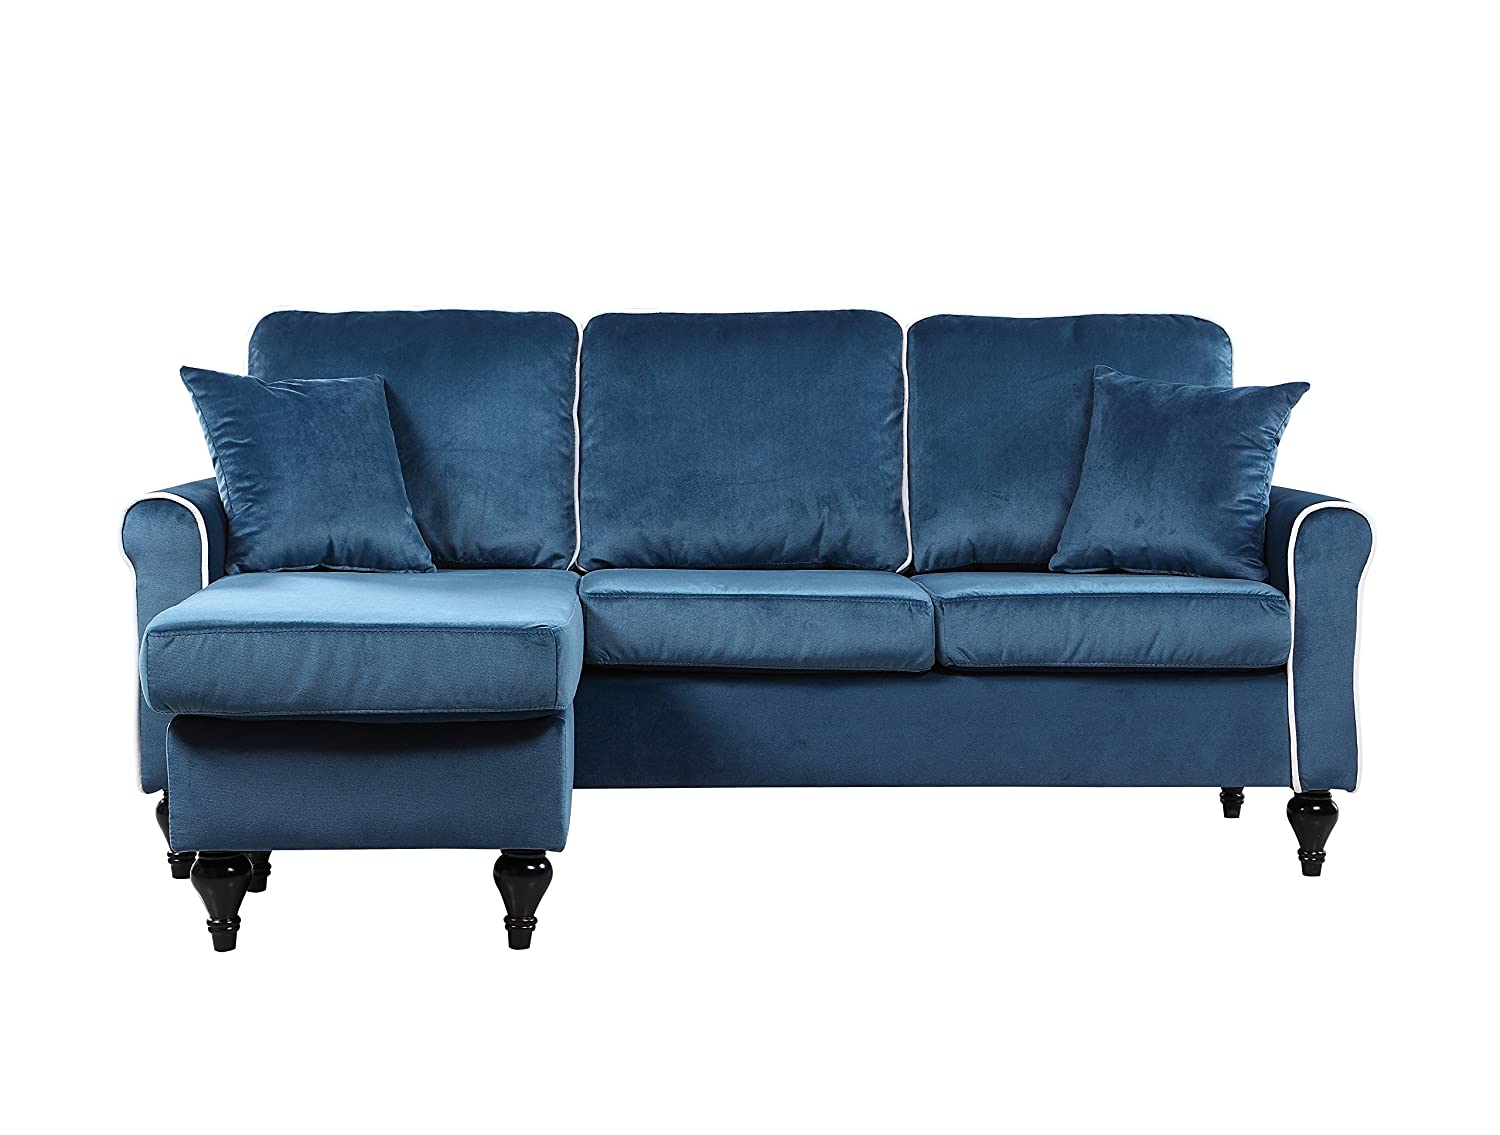 Amazon: Classic And Traditional Small Space Velvet Sectional Sofa With  Reversible Chaise (blue): Kitchen & Dining